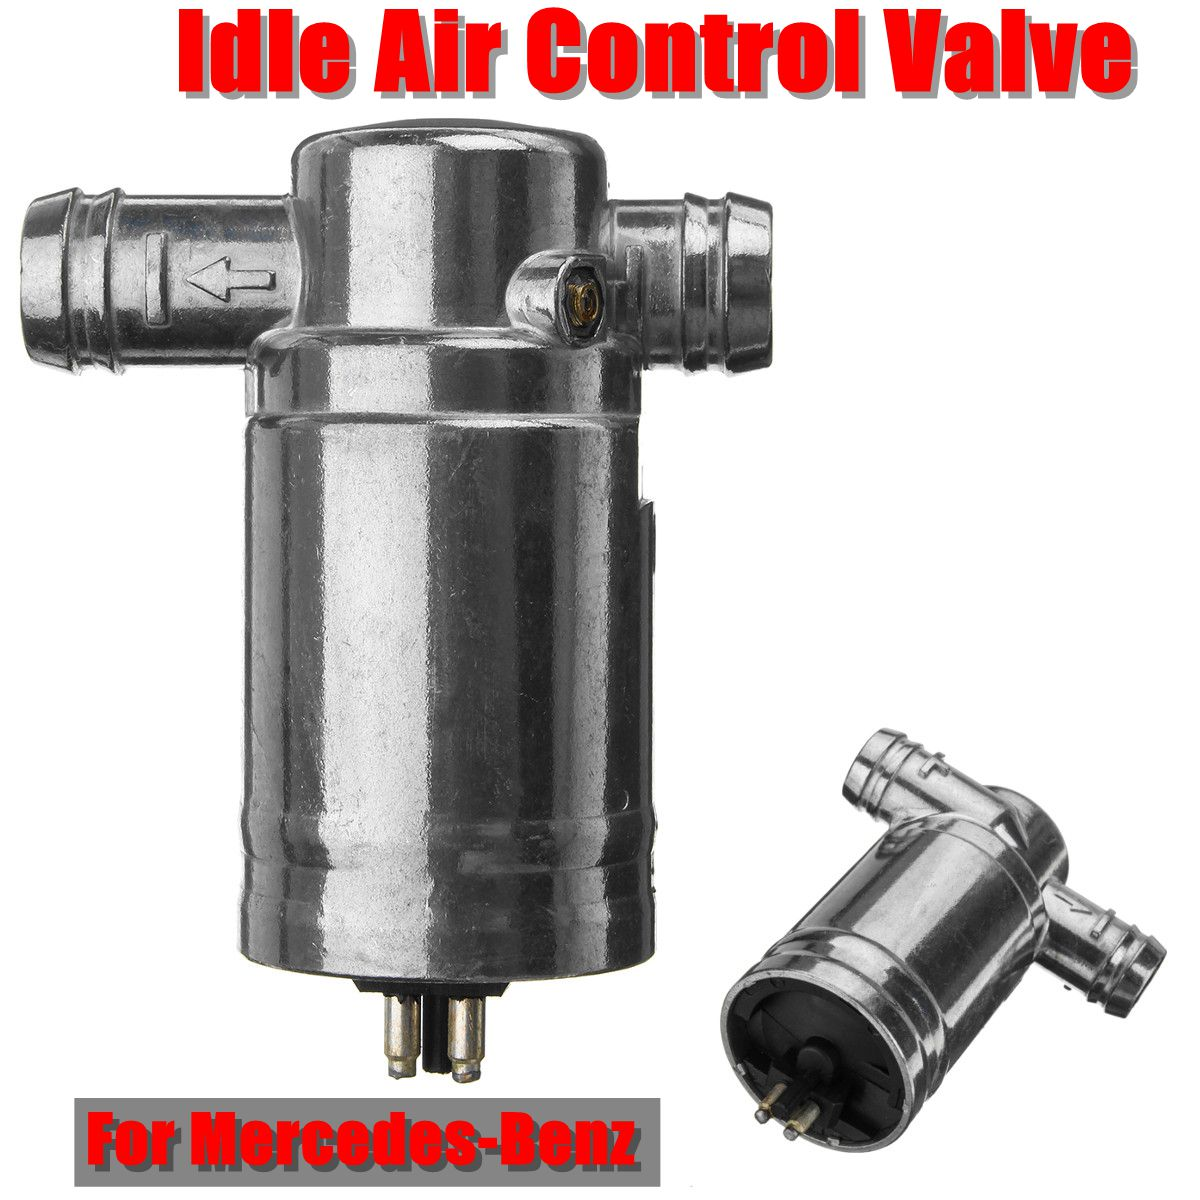 Idle Speed Air Control Valve For Mercedes-Benz W124 W126 W201 190E 300E 300CE 0280140510 0001412225 kit thule mercedes benz w124 w201 w202 w210 sd wag